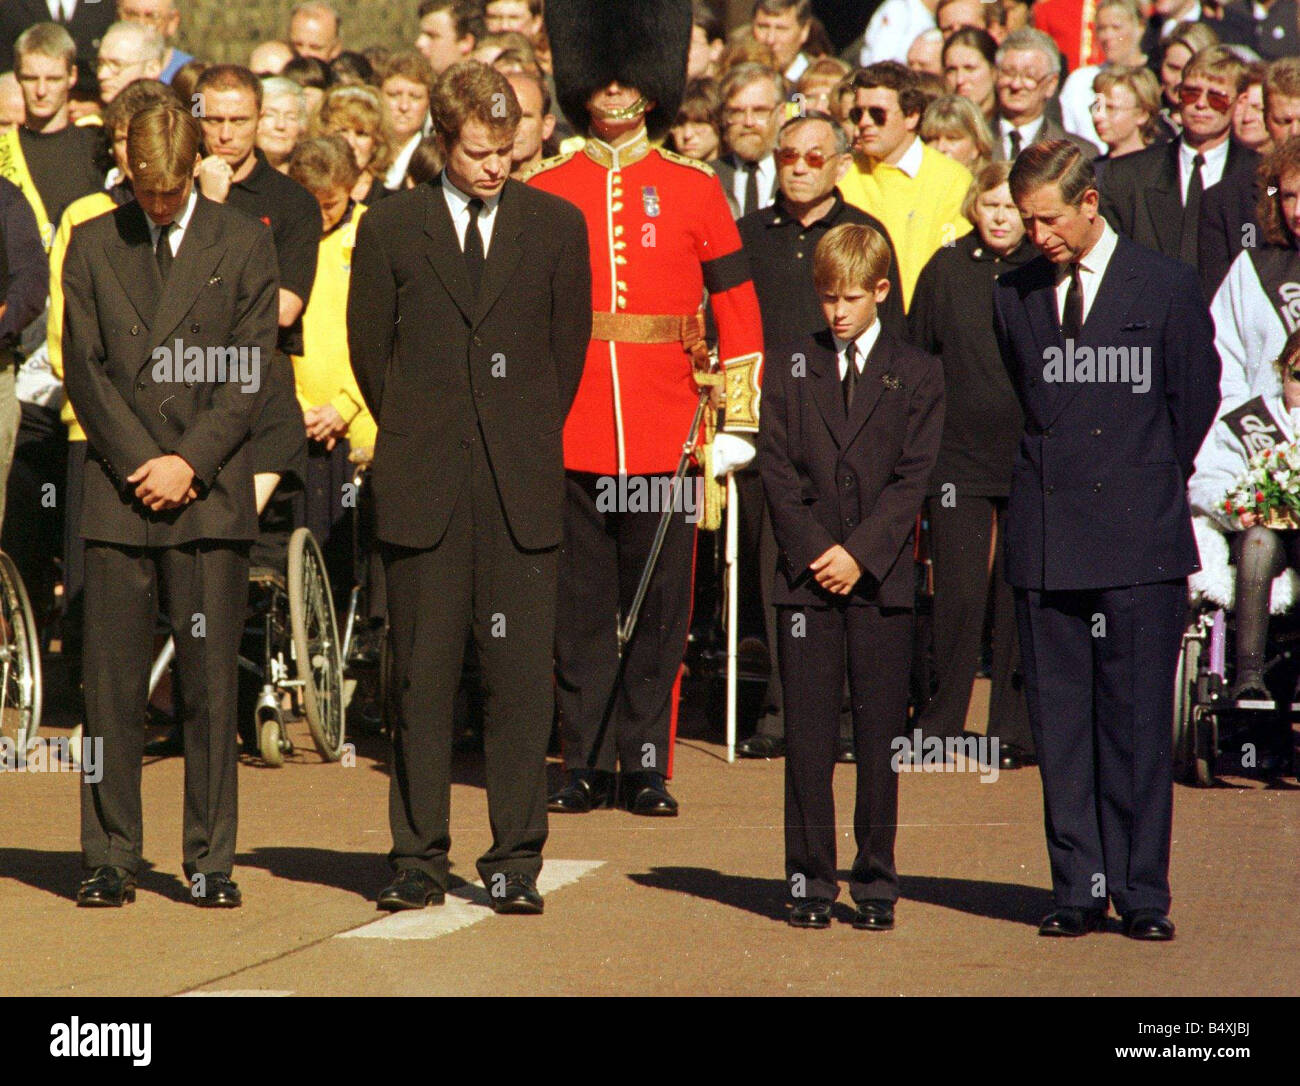 Princess Diana Funeral 6 September 1997 Royals with their heads bowed outside St James Palace Diana Princess of - Stock Image